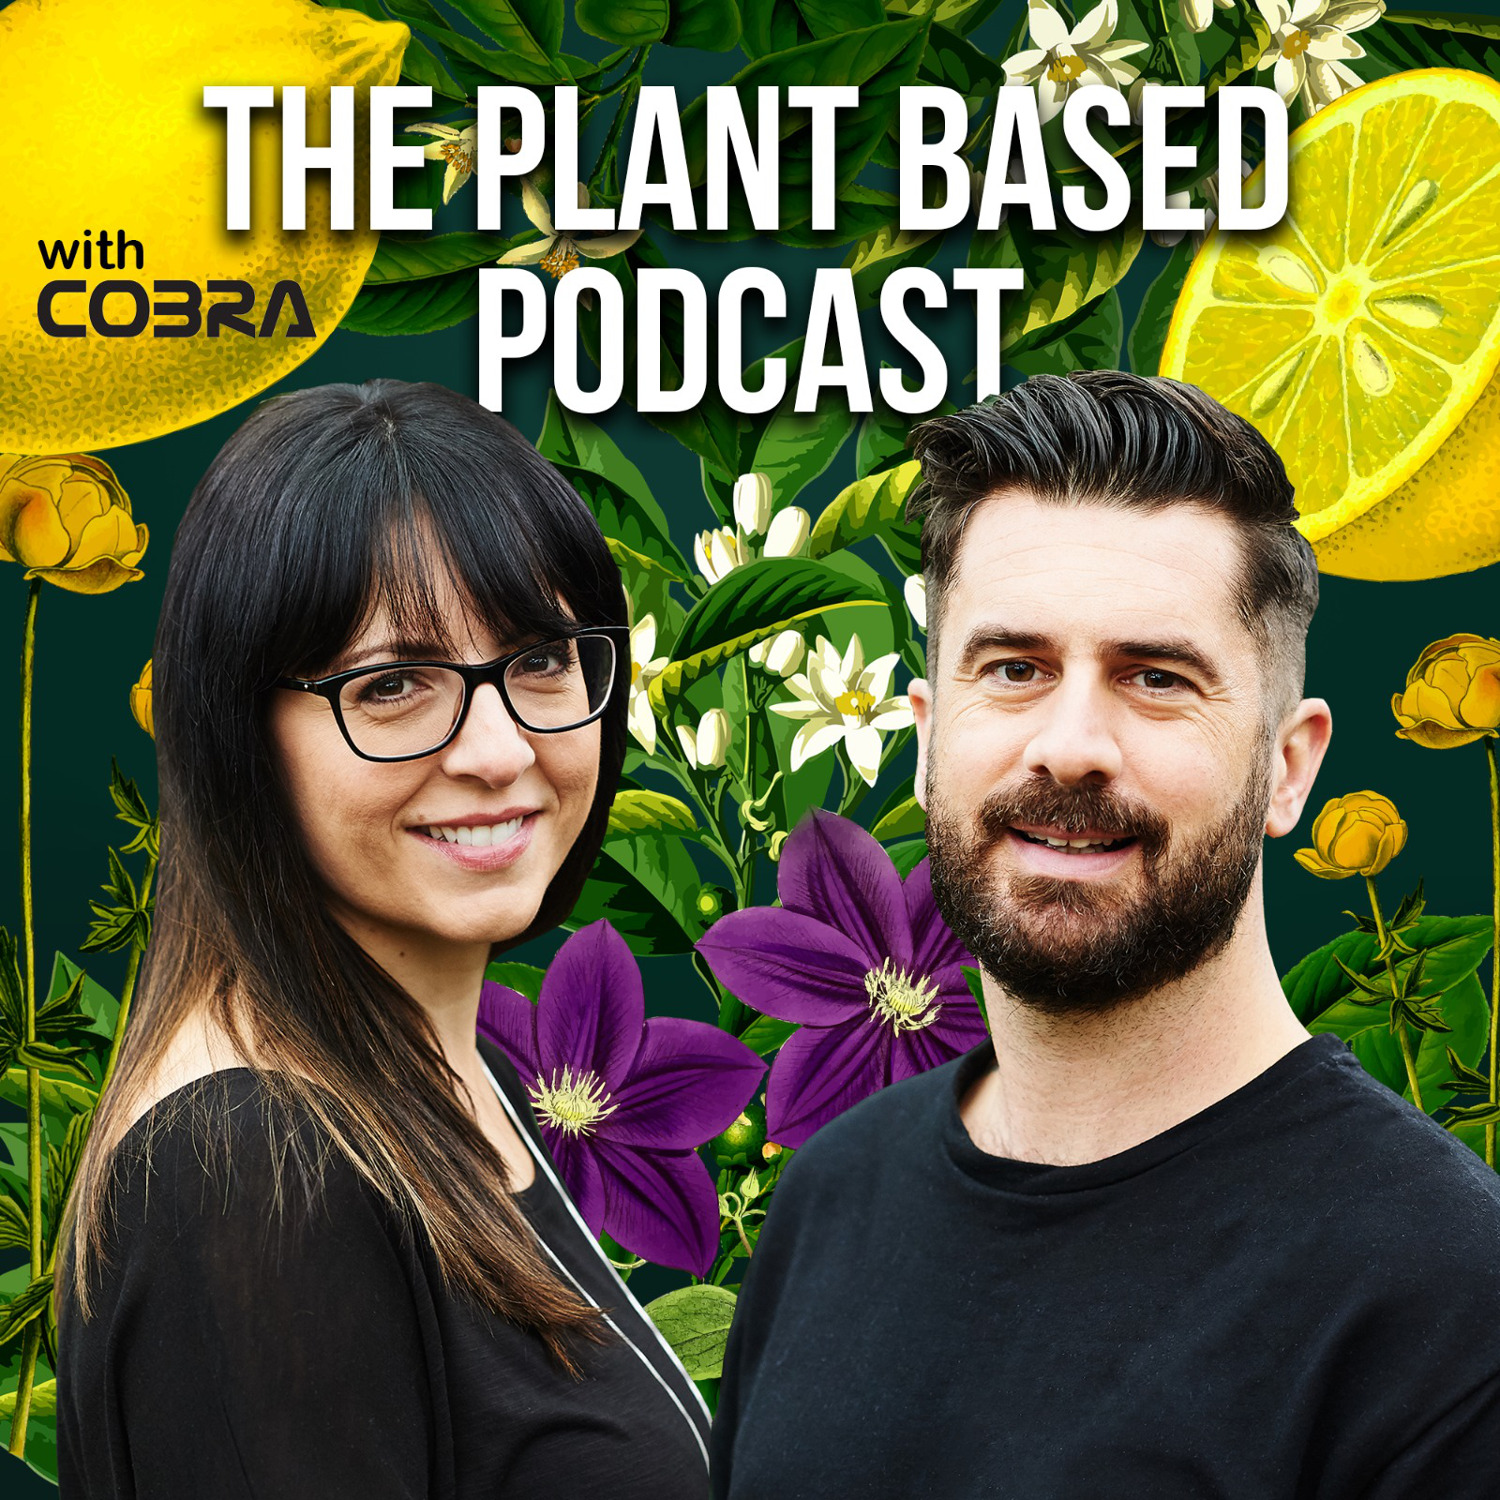 The Plant Based Podcast S4 - News 25/04/21